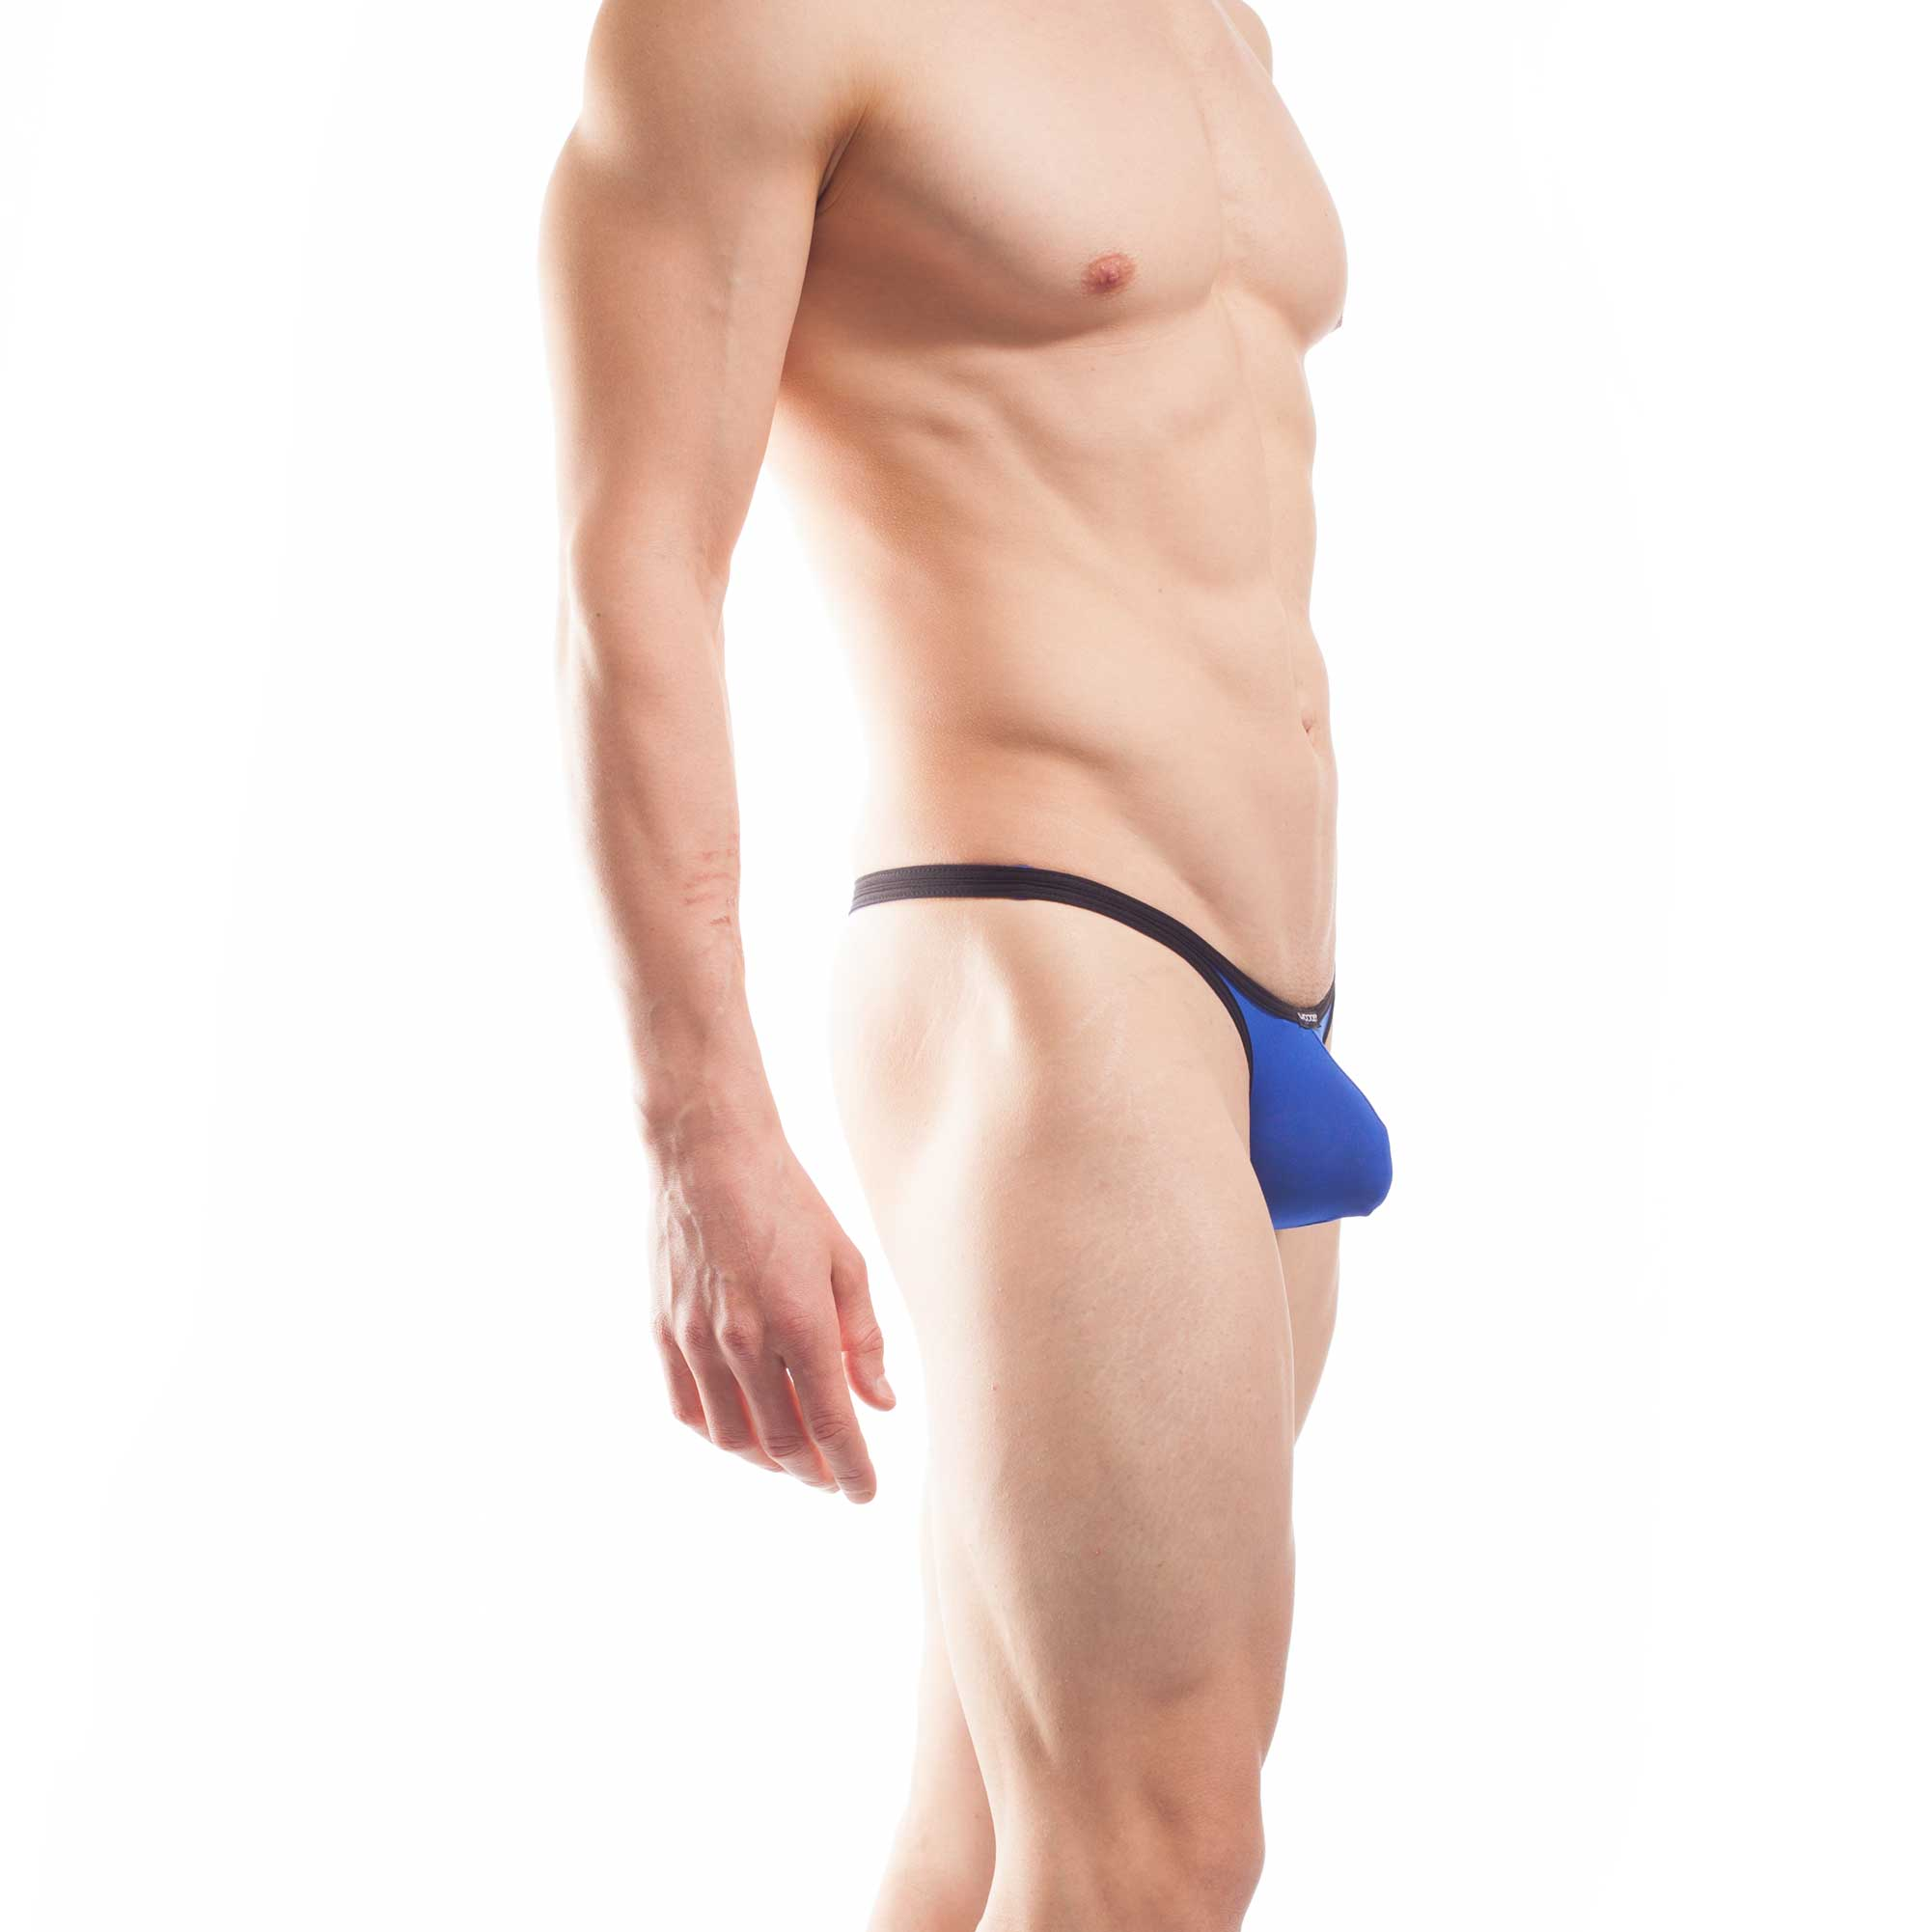 BEUN STRIPE PUSH UP MINI STRING für Herren, Männer String, Tube, knappe Badehose, swim trunks, kontrast Ränder, schwarze Börtchen, royalblau, königsblau, blau